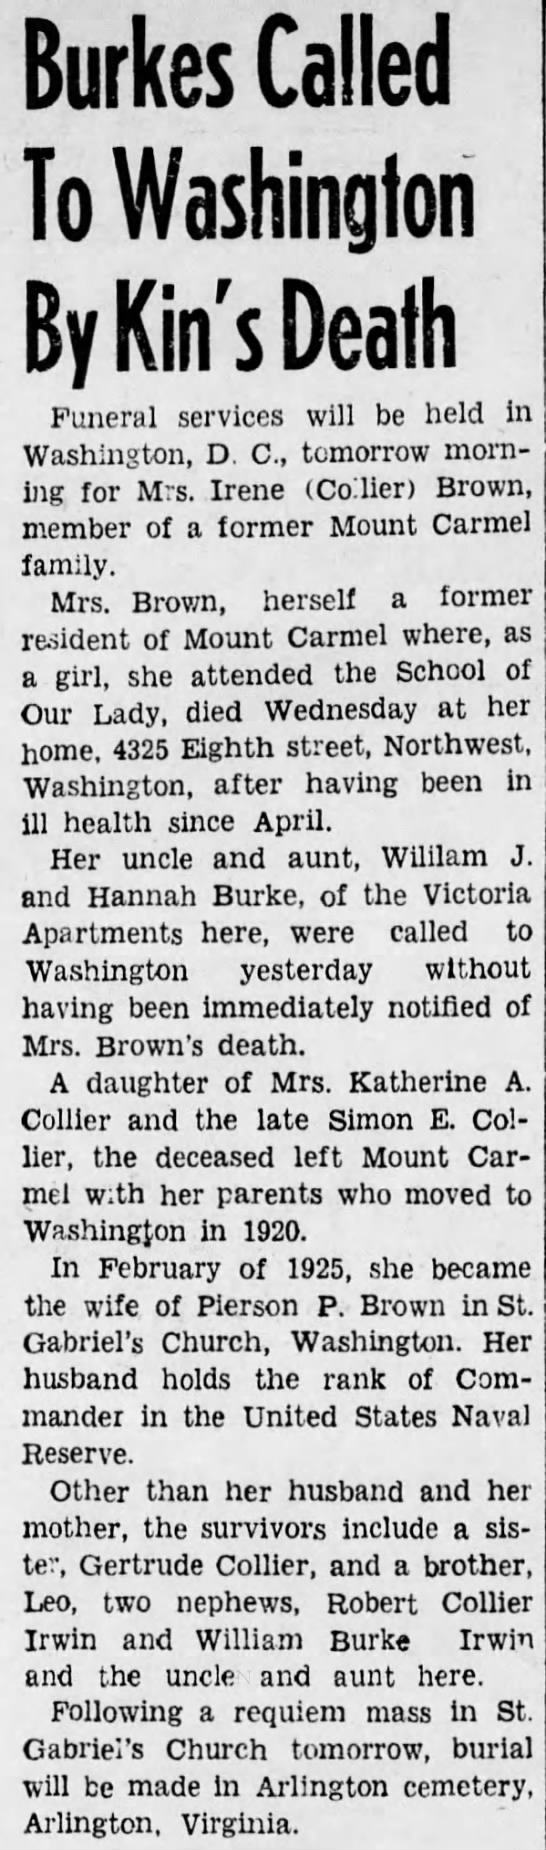 Irene Brown Obit Oct 29 1943, p.3 - Burkes Called To Washington By Kin's Death...